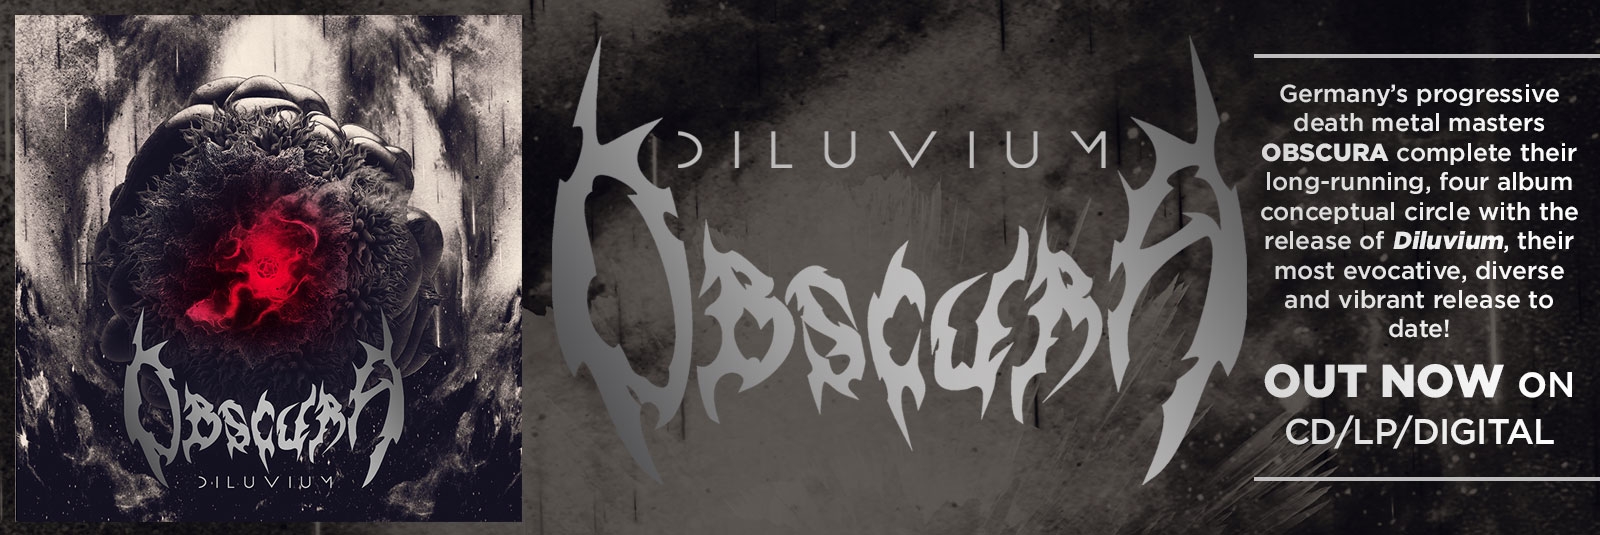 obscura-diluvium-death-metal-relapse-out-now